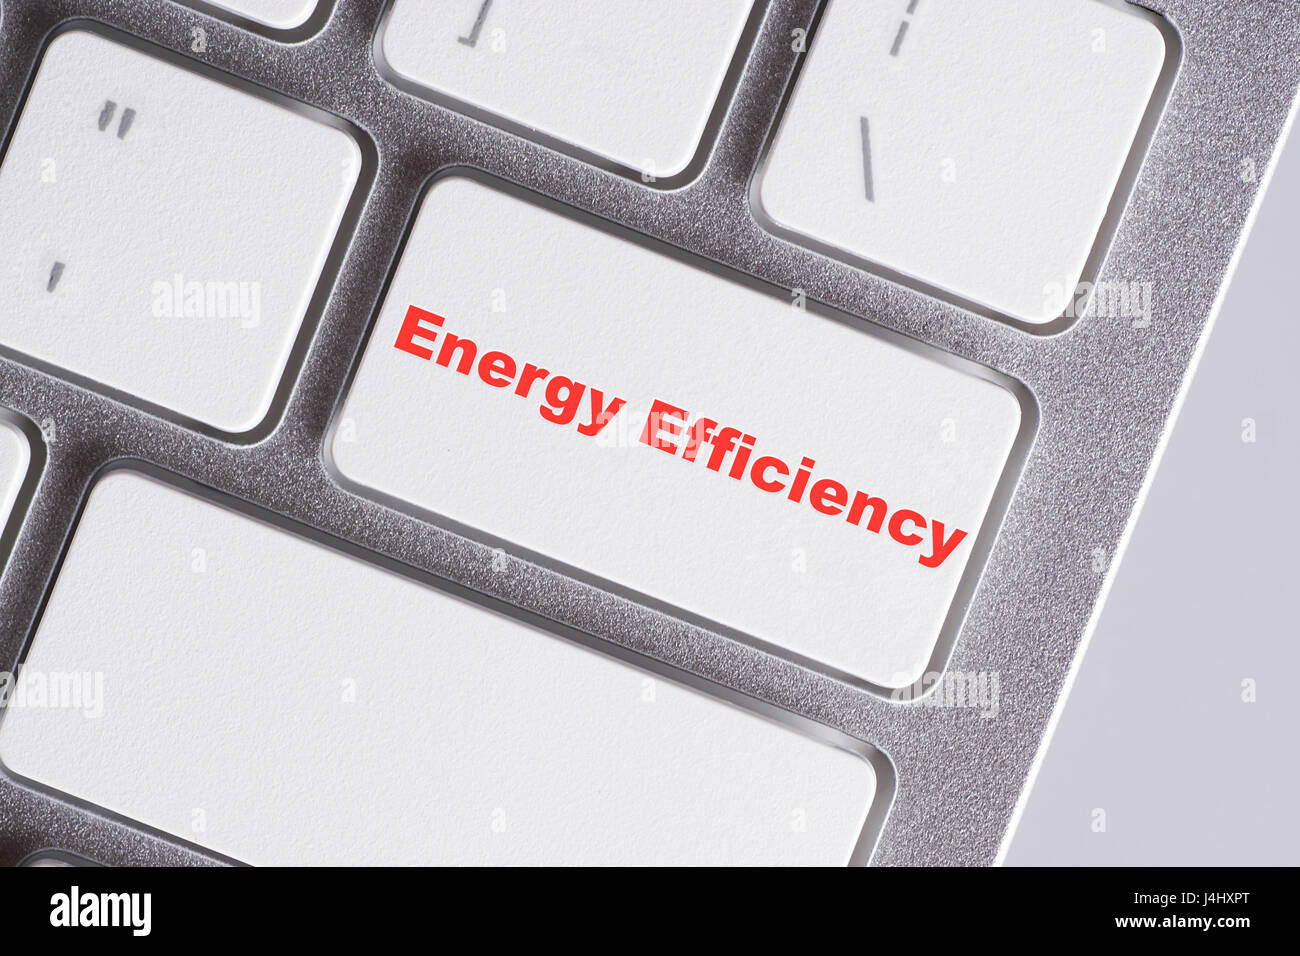 'Energy efficiency' red words on white keyboard - online, education and business concept - Stock Image